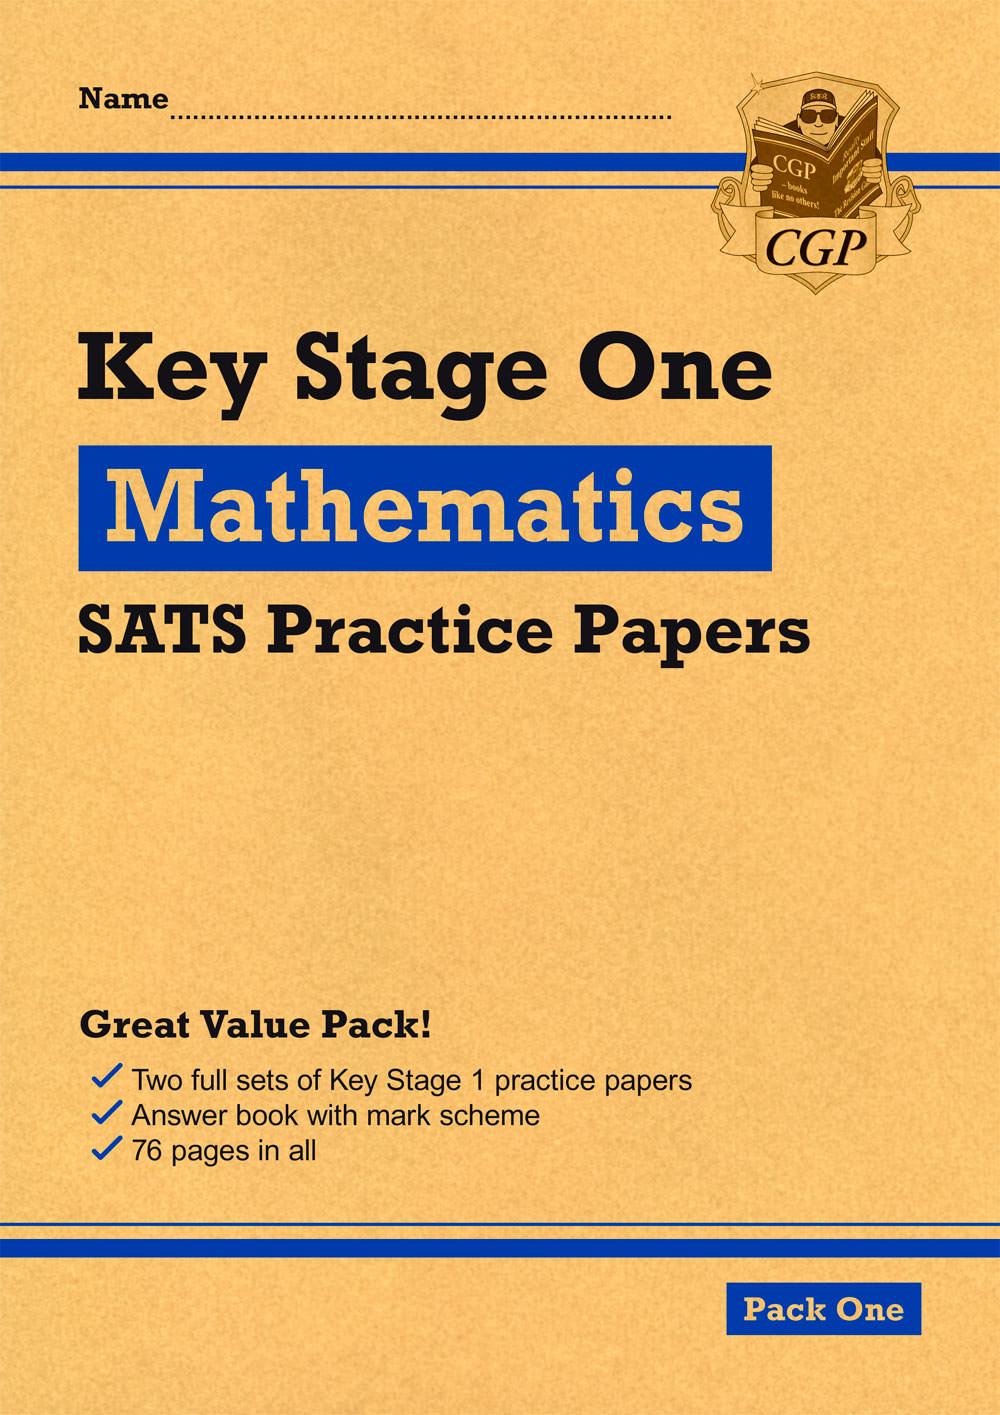 MHEP14 - New KS1 Maths SATS Practice Papers: Pack 1 (for the 2020 tests)